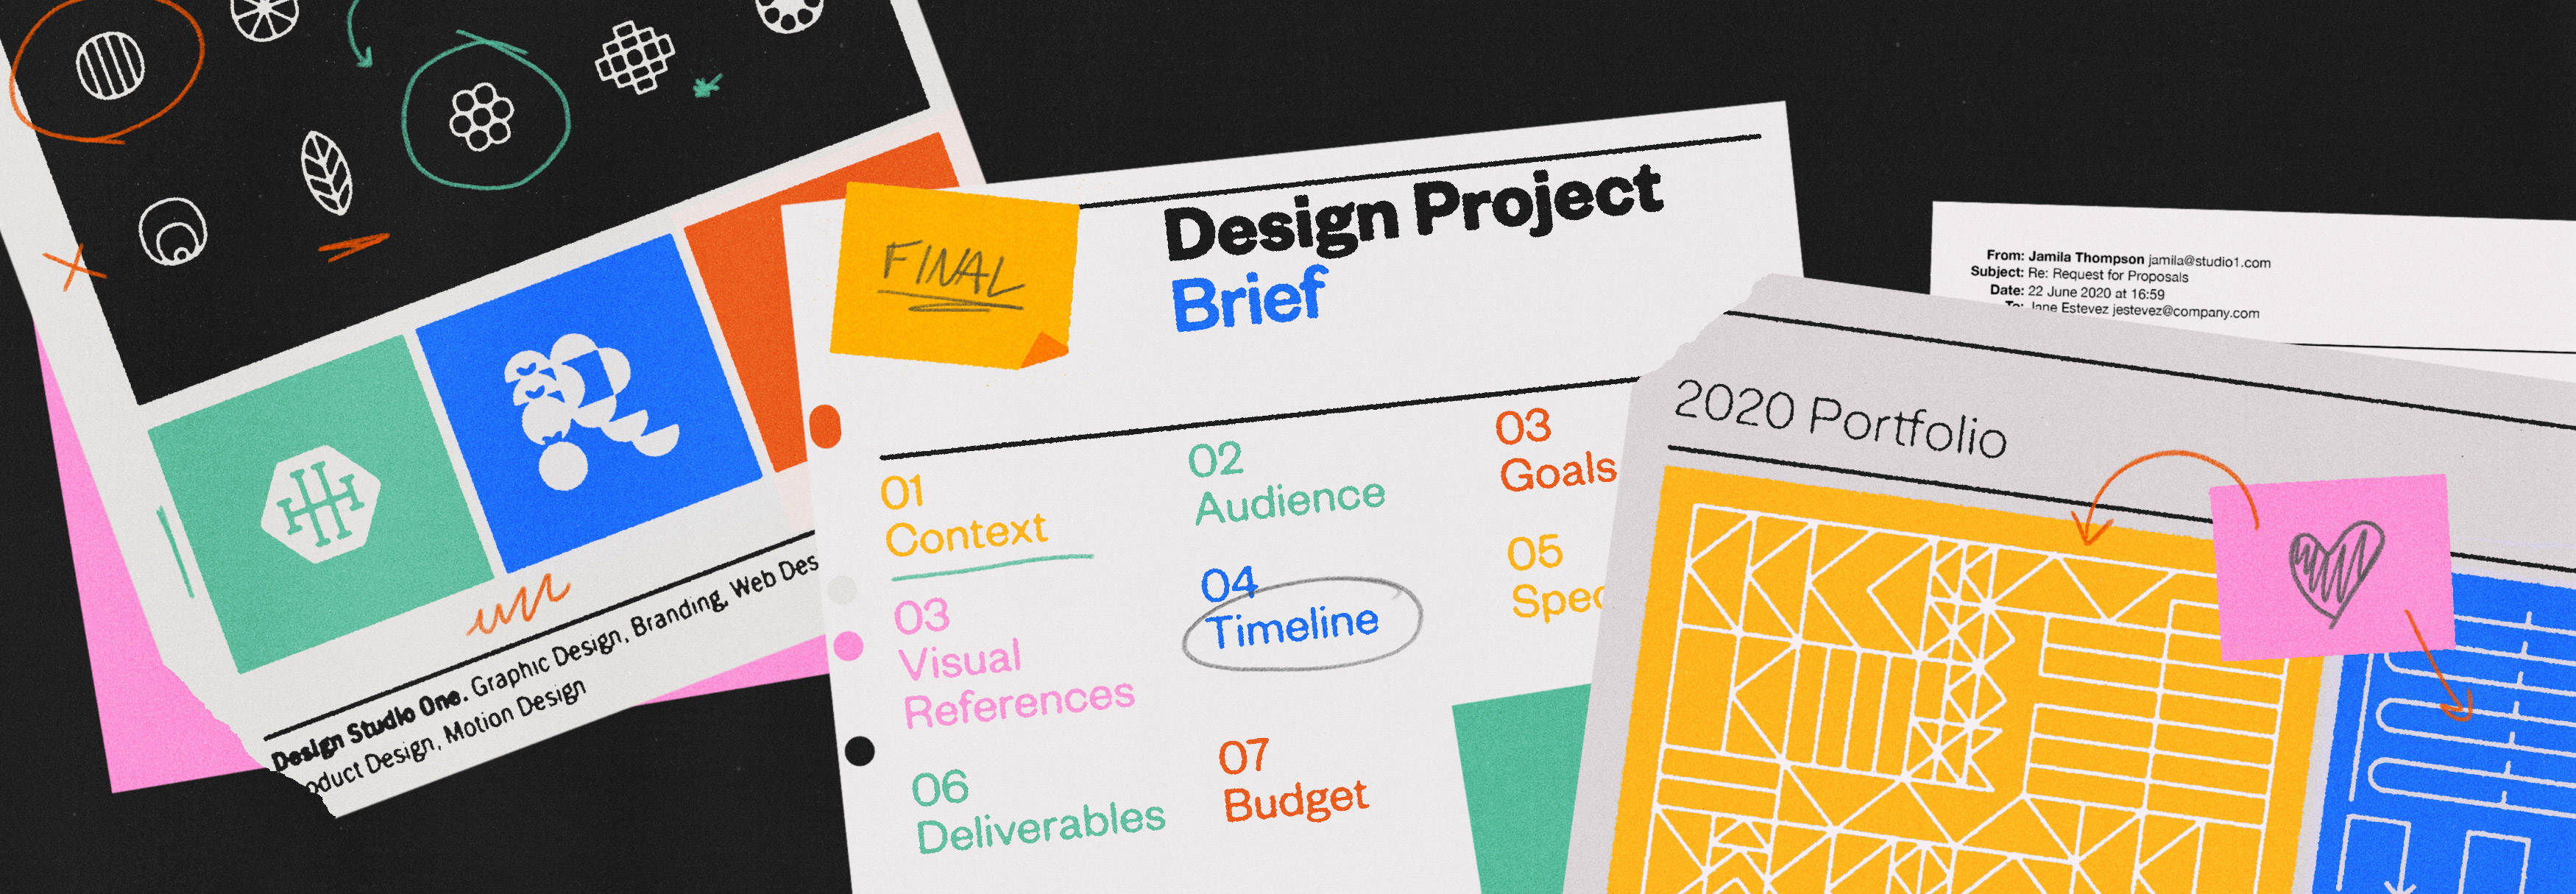 Designer Fund - A Guide for Working with Design Freelancers and Creative Studios